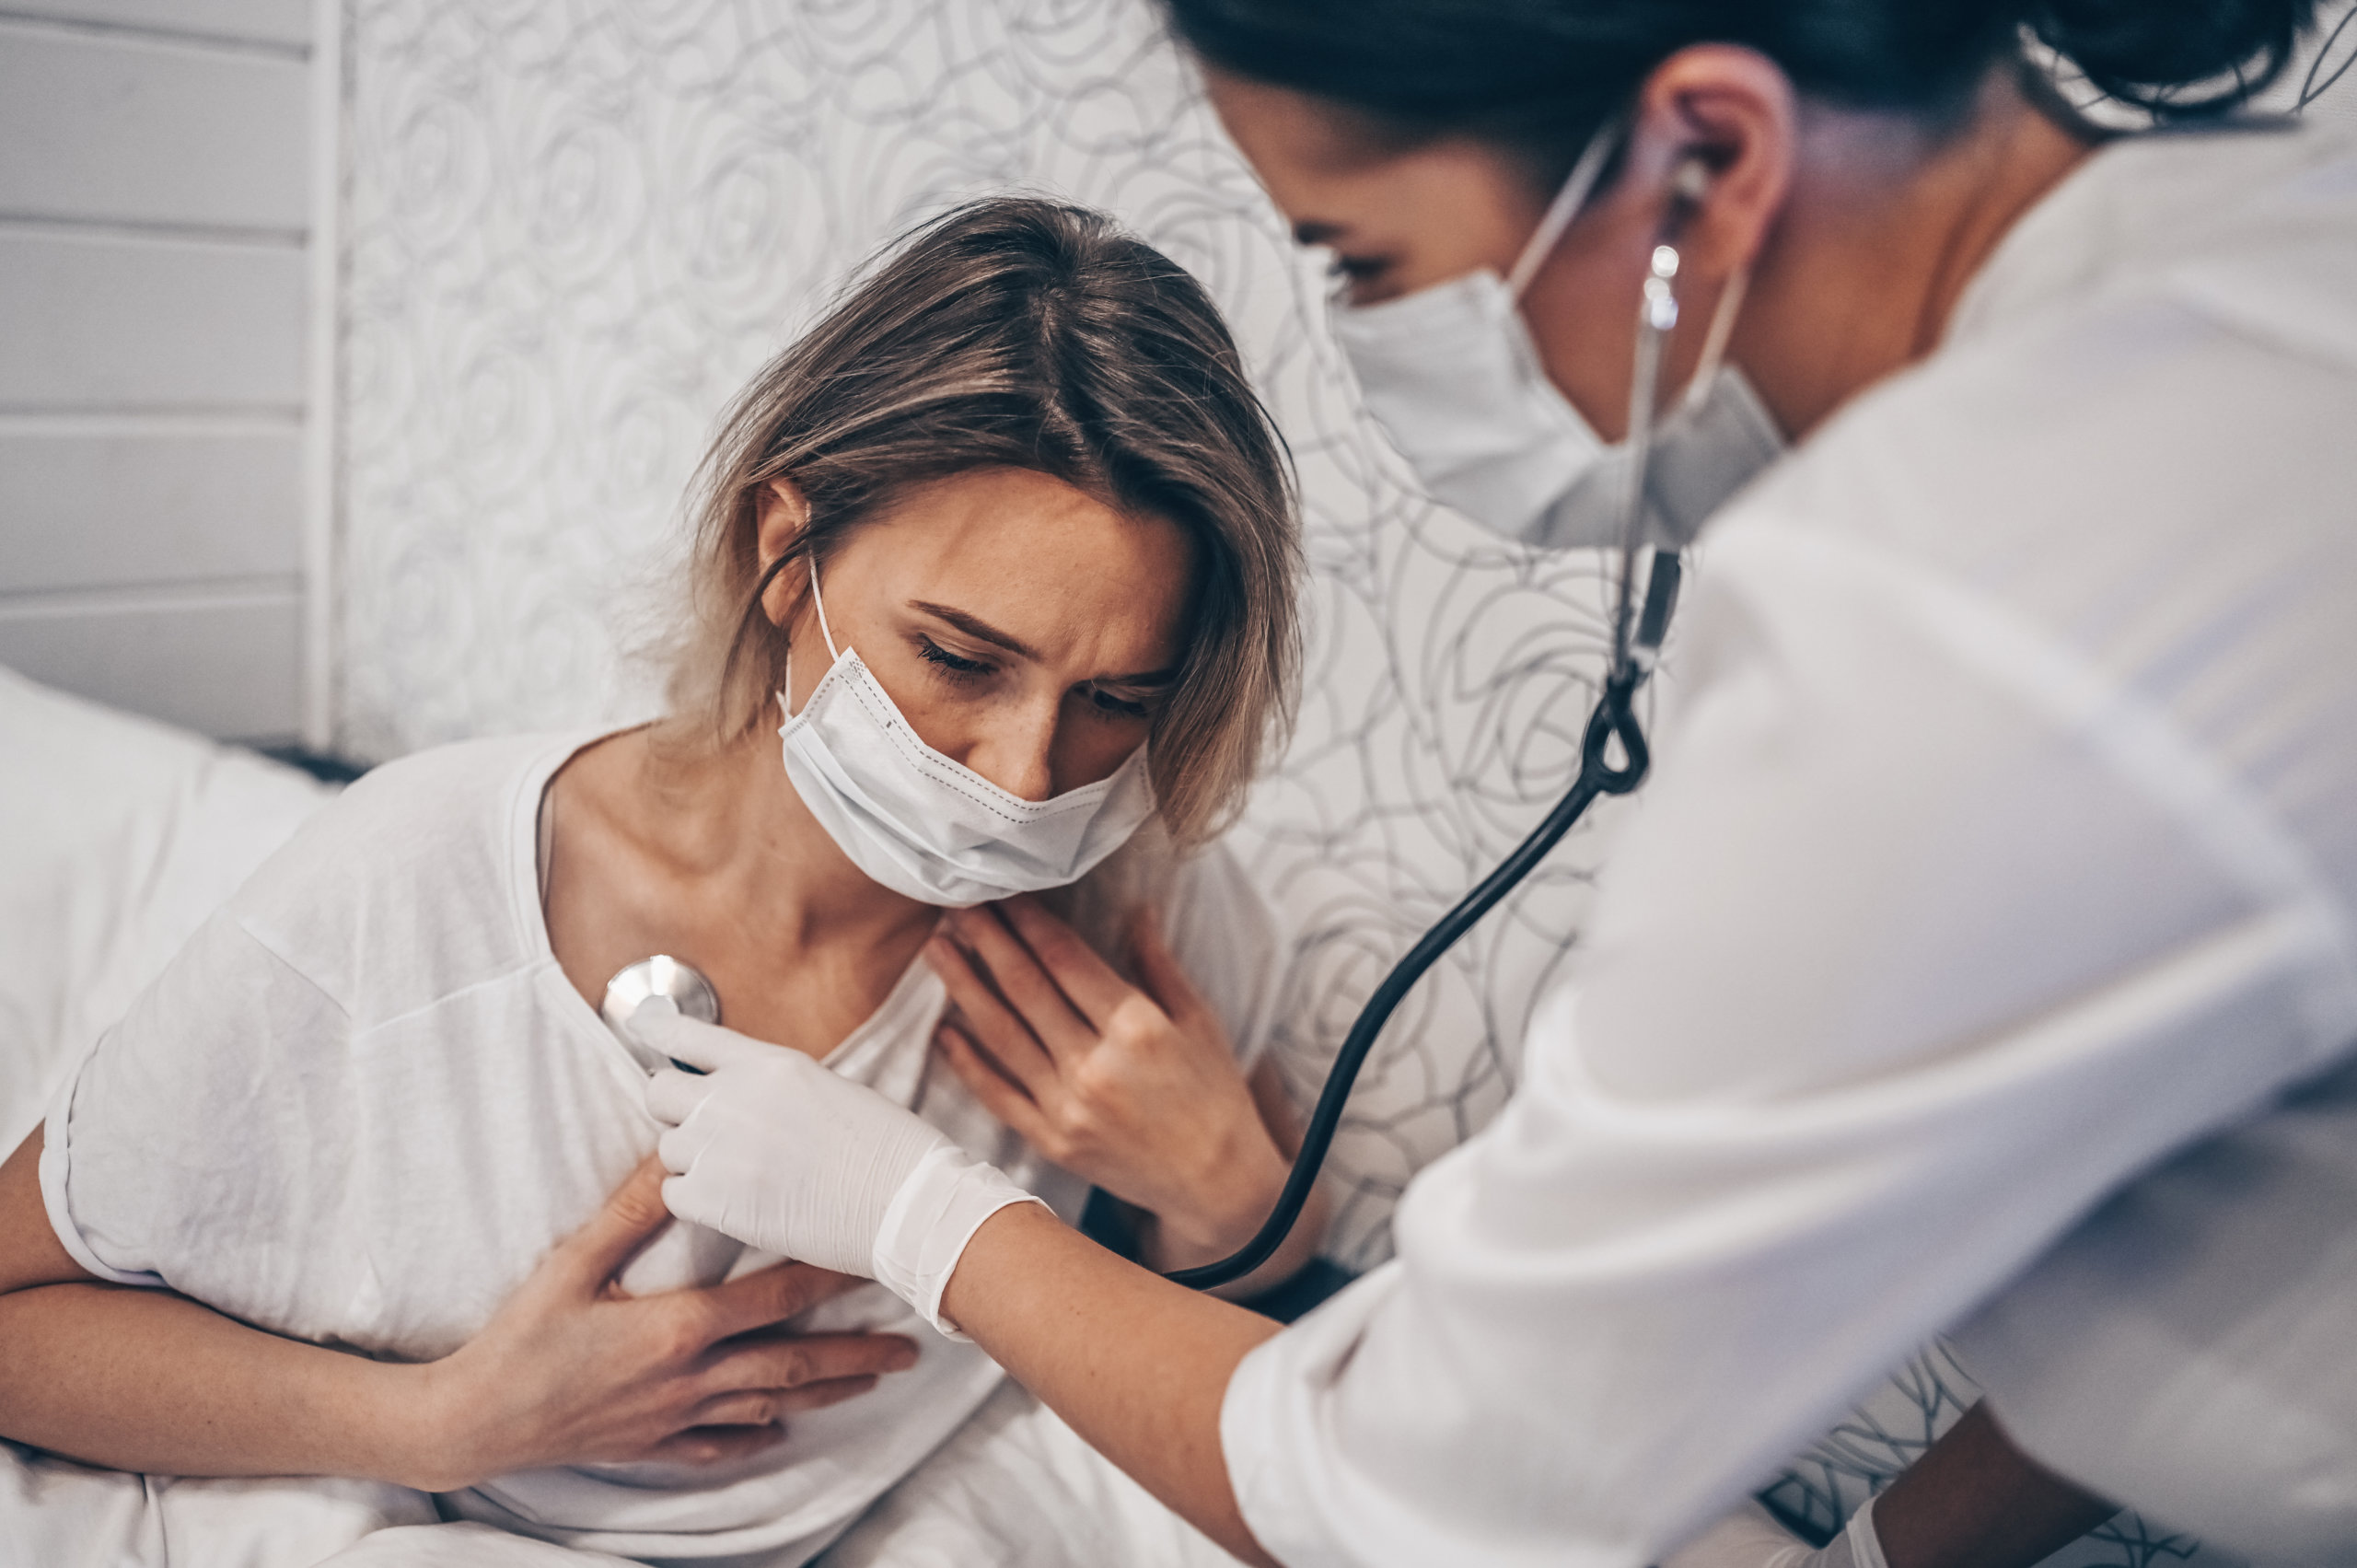 Study: 3 in 4 COVID patients still have symptoms 6 months after getting sick -